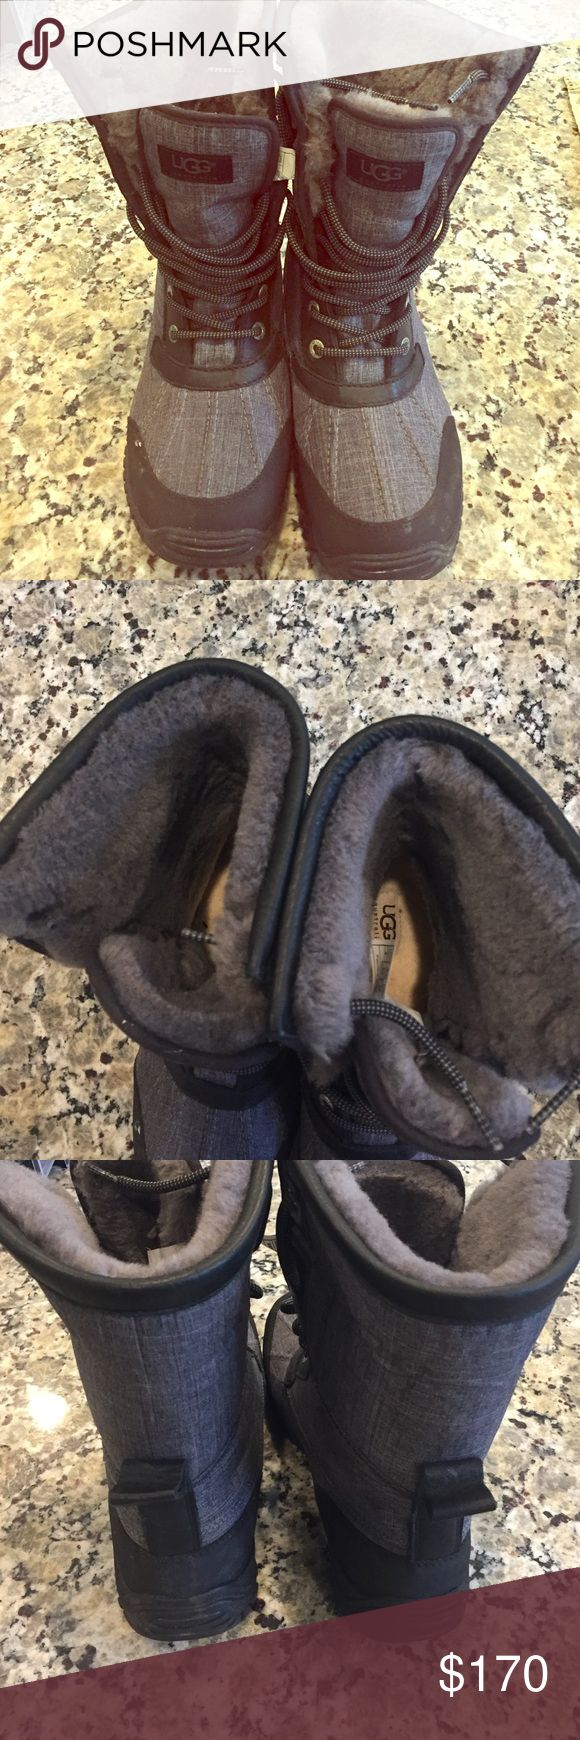 Ugg adirondack boots us size 8 women's Excellent like new condition. Worn once. No stains UGG Shoes Winter & Rain Boots